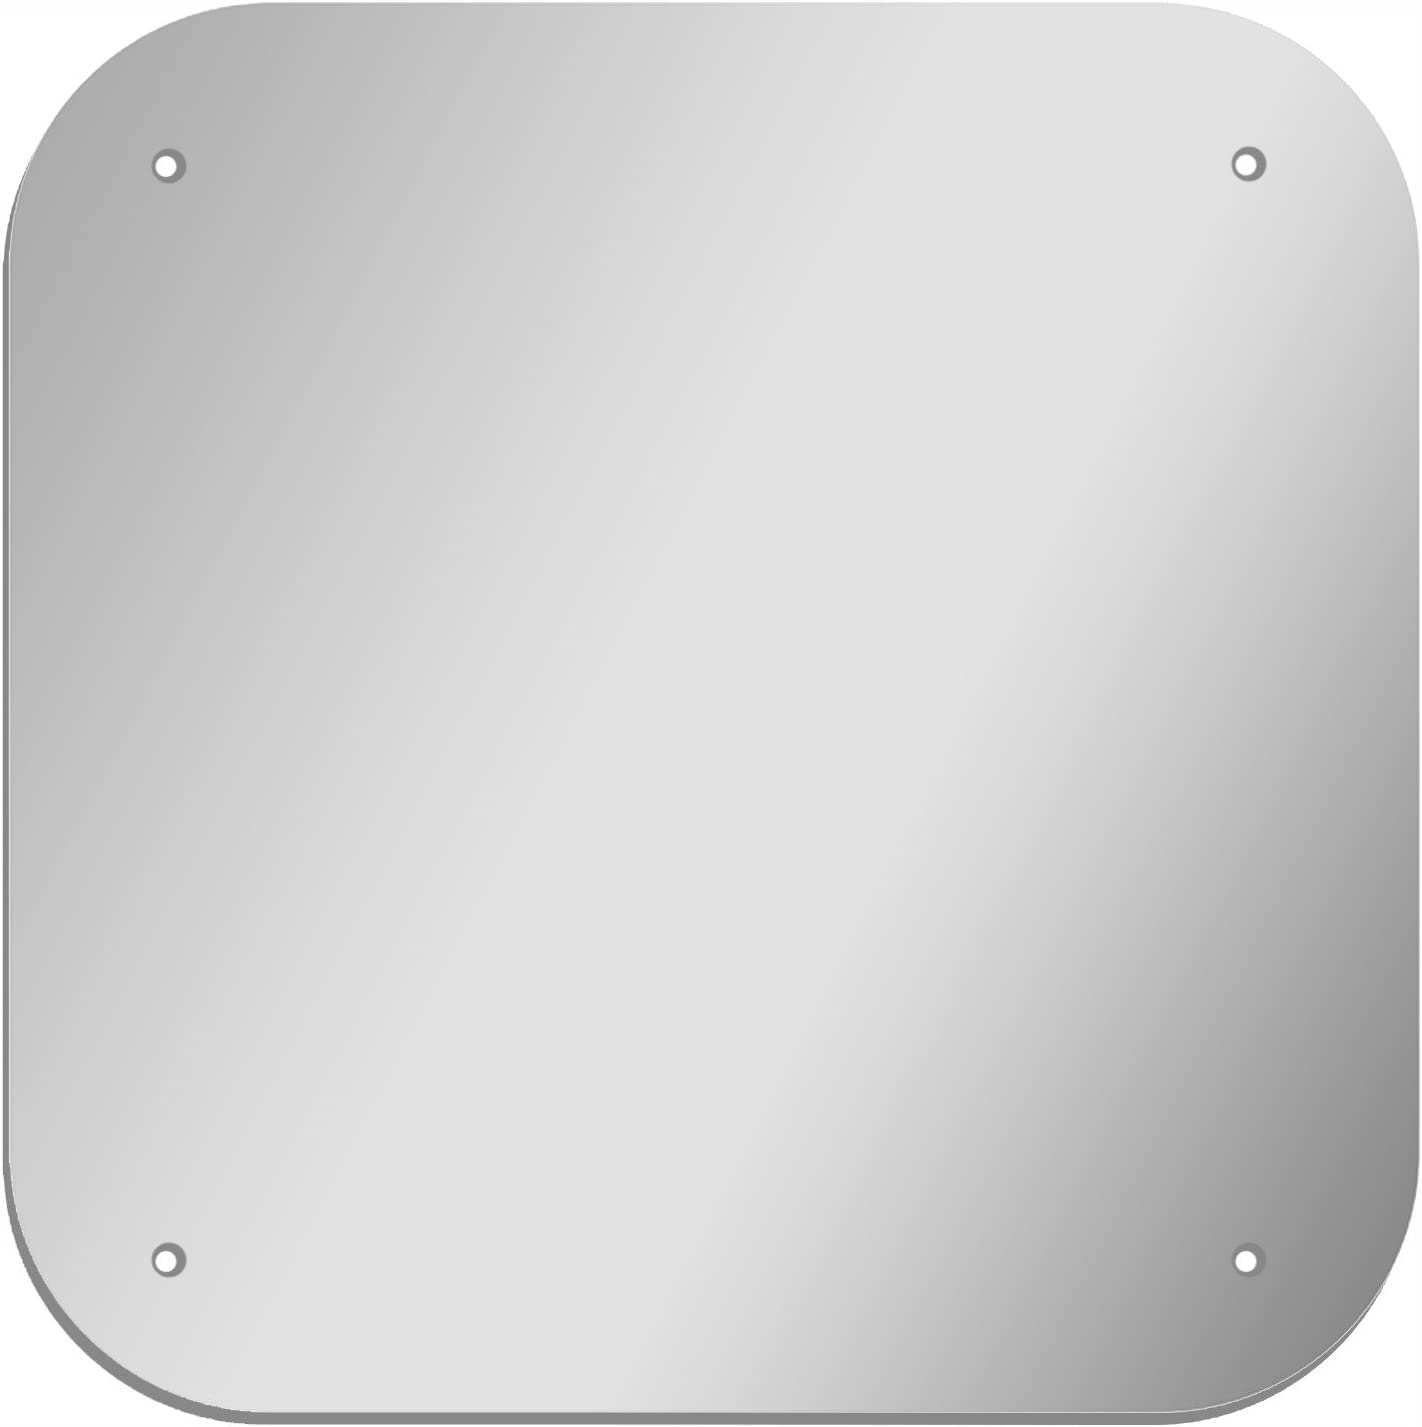 GLOSSY GALLERY Translated Square Shatterproof Acrylic Ro Mirror Safety Large discharge sale with